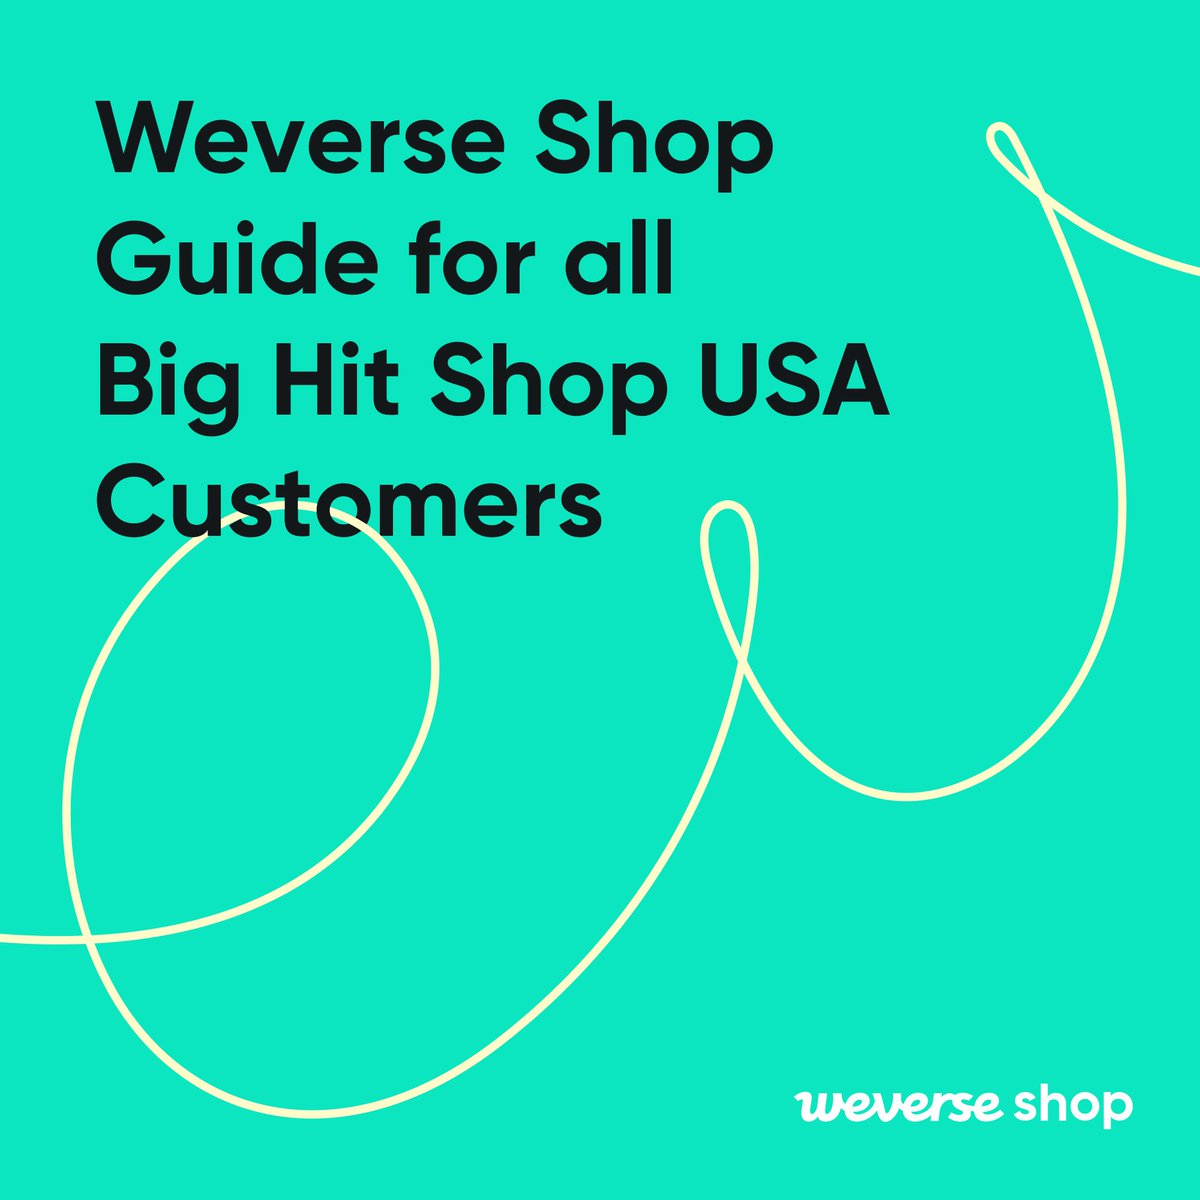 From Big Hit Shop USA to Weverse Shop USA! If its your first time on Weverse, heres our guide on how to get started! Download Weverse Shop 👉 app.weverseshop.io/5dni0